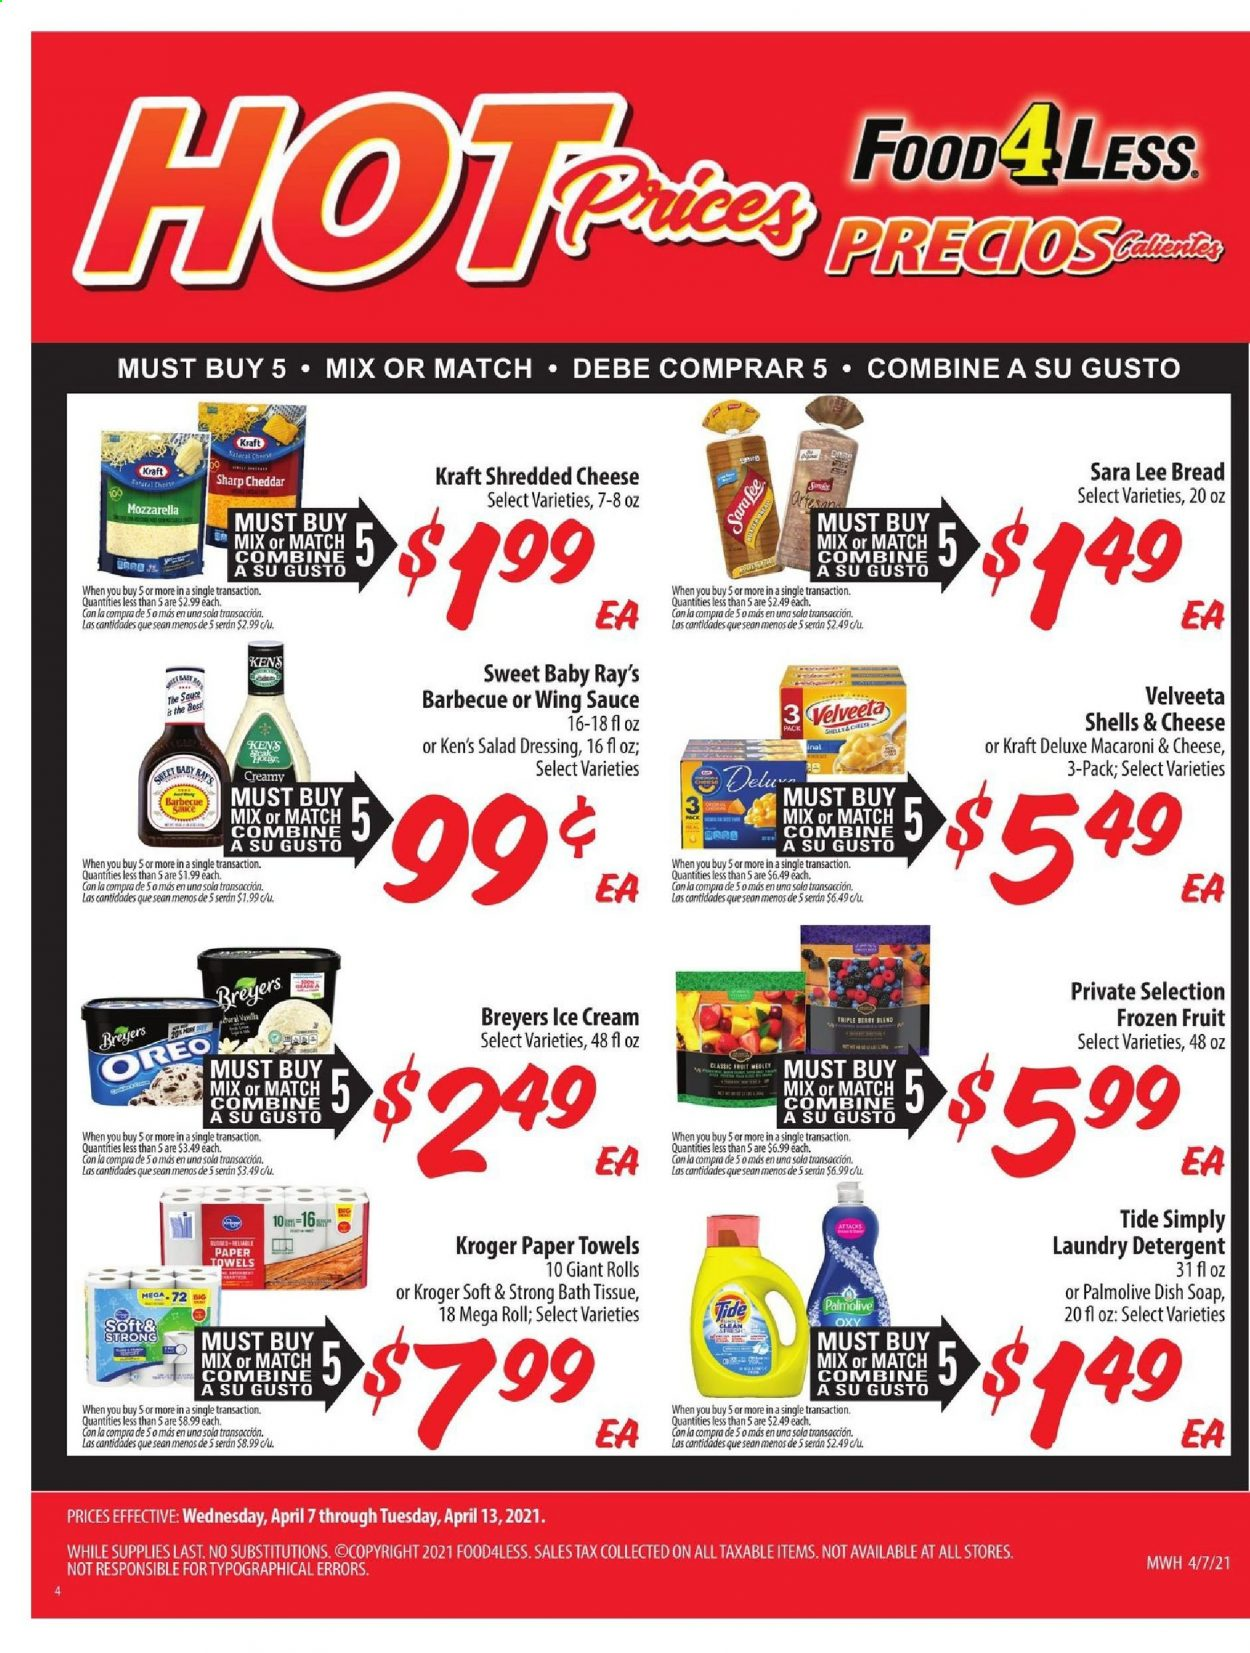 Food 4 Less Flyer - 04.07.2021 - 04.13.2021 - Sales products - bread, Sara Lee, macaroni & cheese, sauce, Kraft®, mozzarella, shredded cheese, Oreo, ice cream, salad dressing, dressing, wing sauce, bath tissue, kitchen towels, paper towels, detergent, Tide, laundry detergent, Palmolive, soap, Sharp, sheet. Page 1.